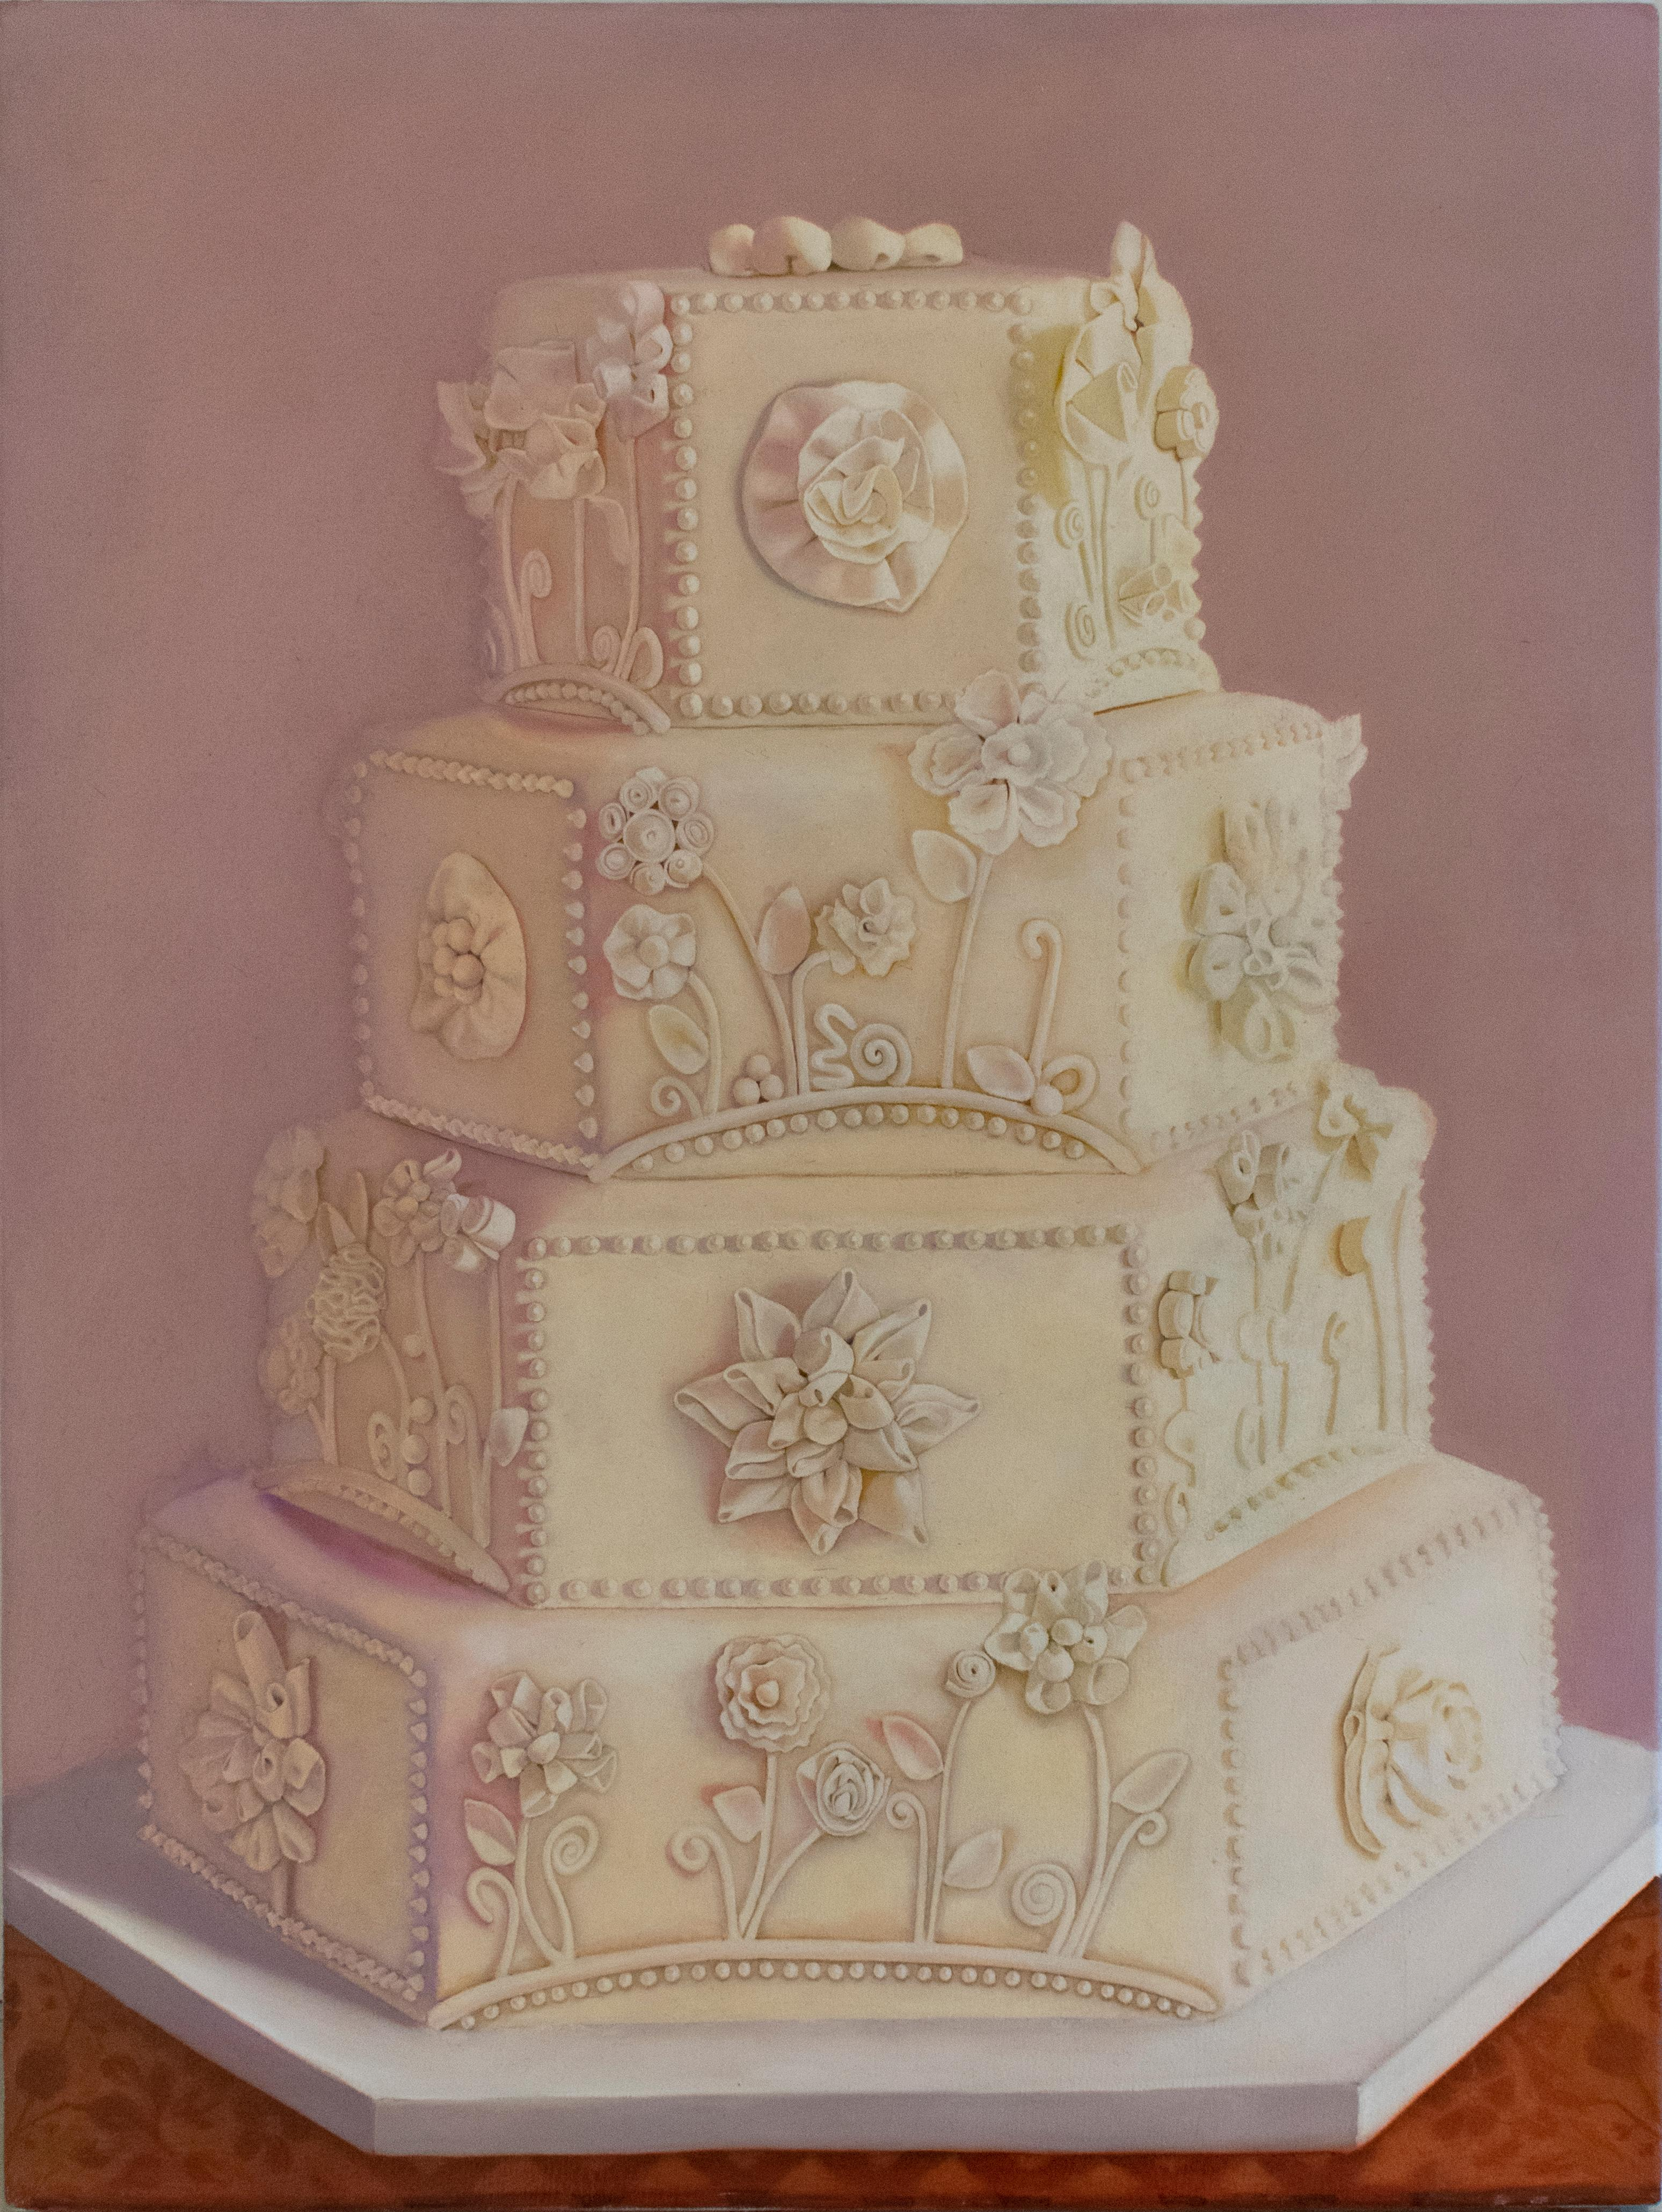 Wedding Cake (Realist oil Painting of Multi Tiered Iced Cake)